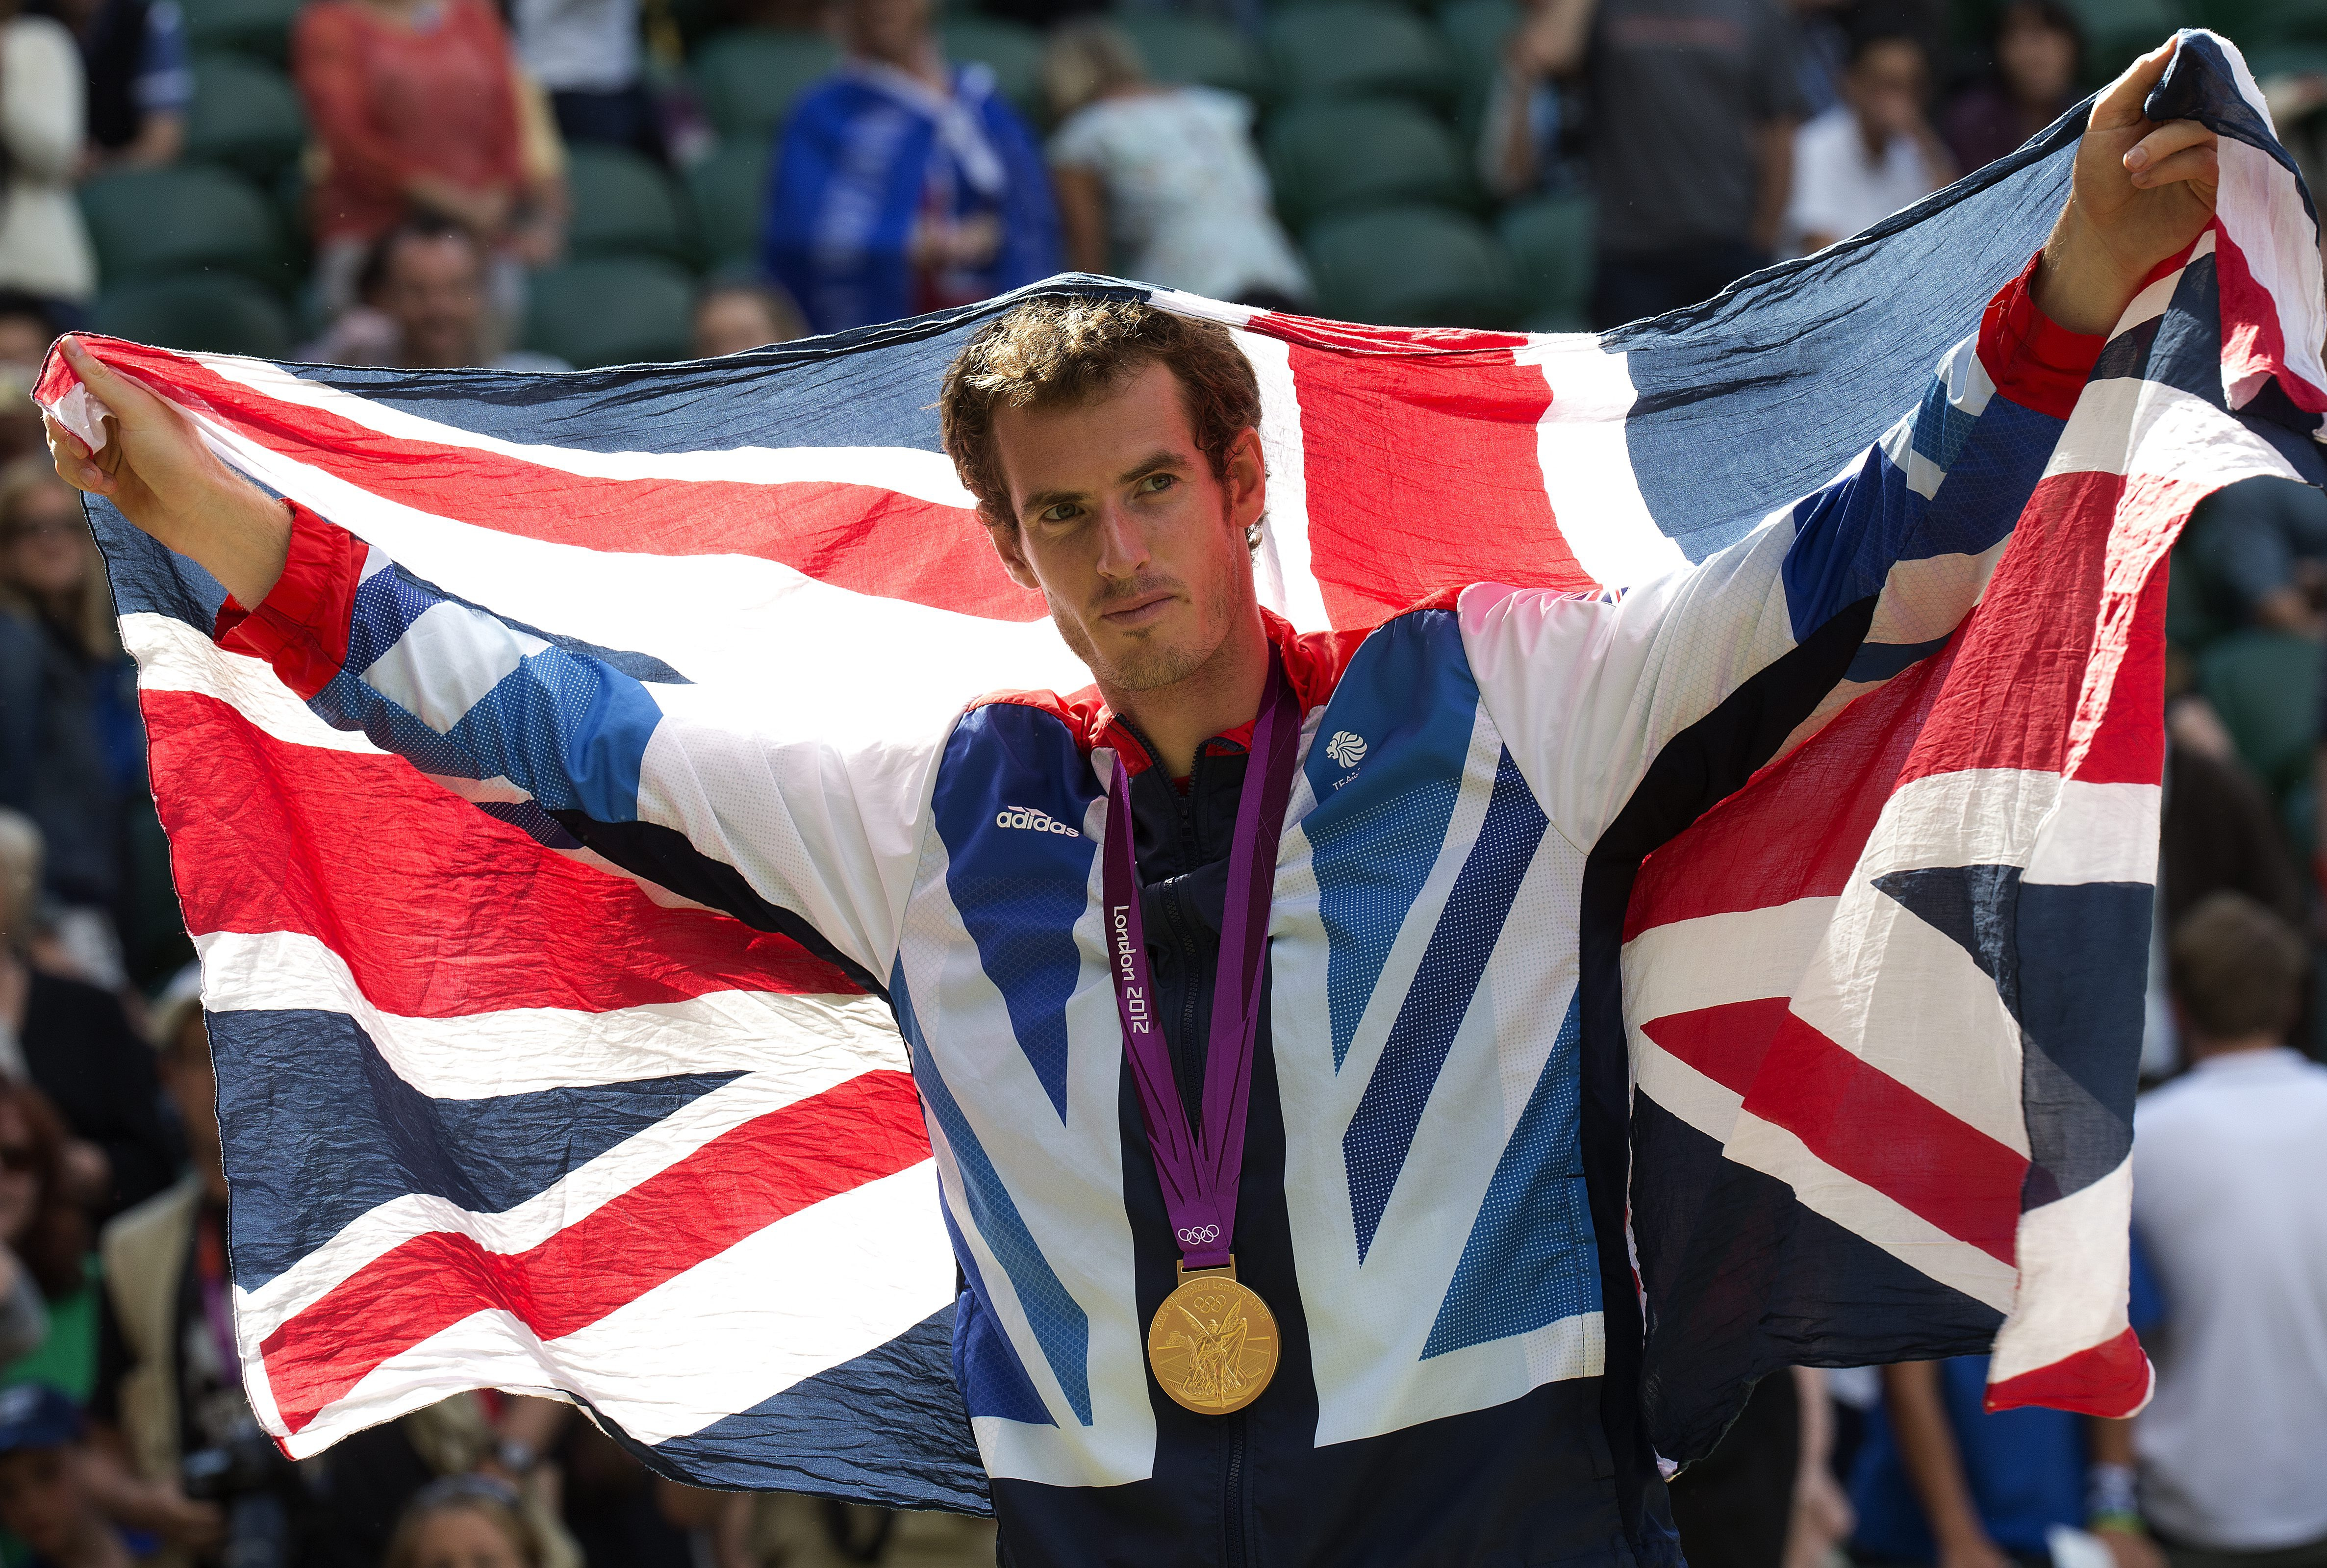 Gold medalist Andy Murray of Great Britain poses after the medal ceremony for the men's singles tennis match at the Olympic Games on Aug. 5, 2012, in London